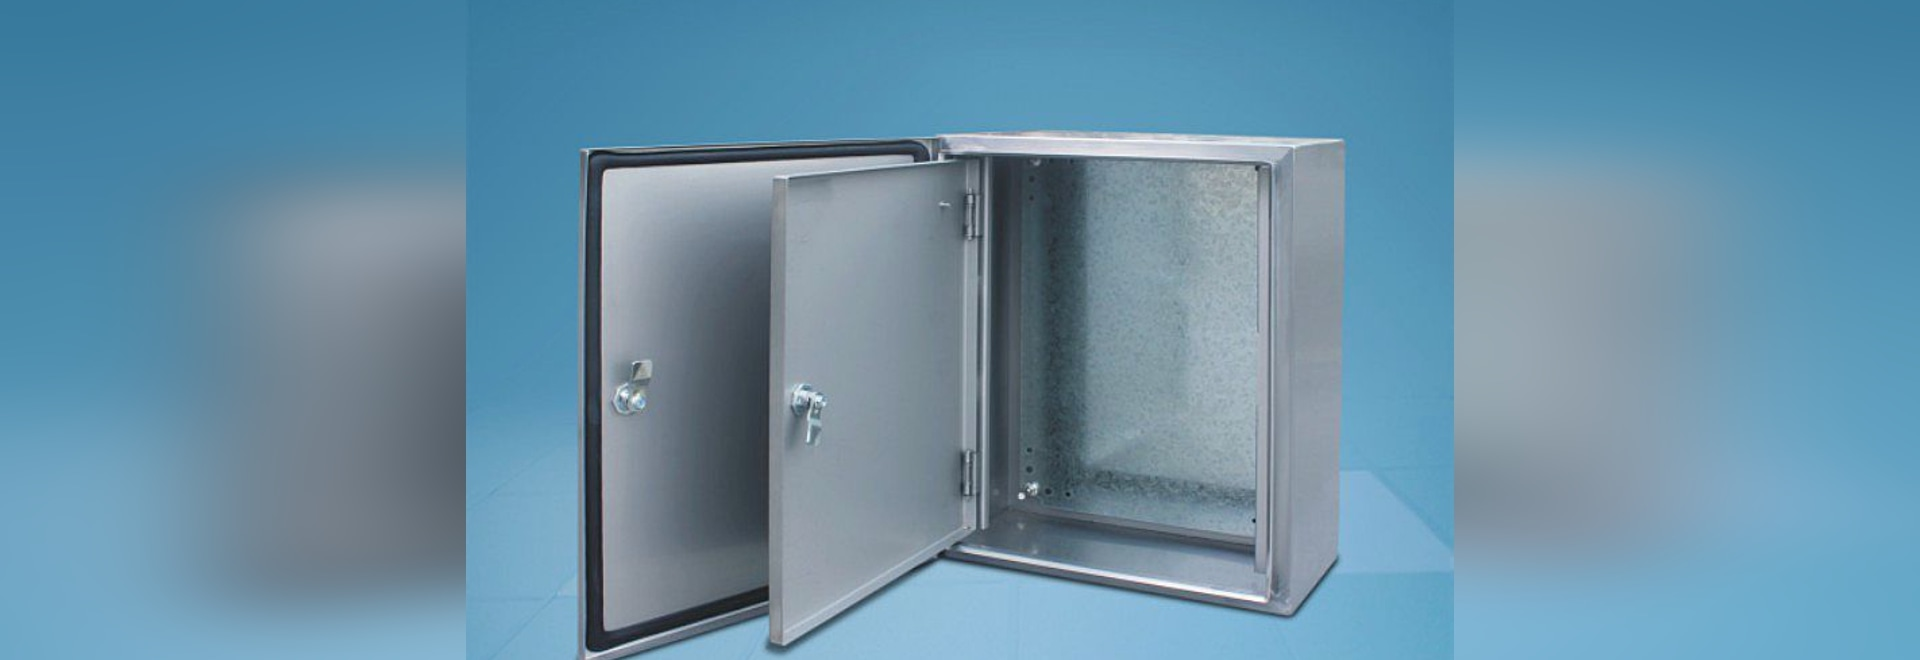 Stainless steel box with inner door & Stainless steel box with inner door - ZHEJIANG TIANQI ELECTRIC CO.LTD